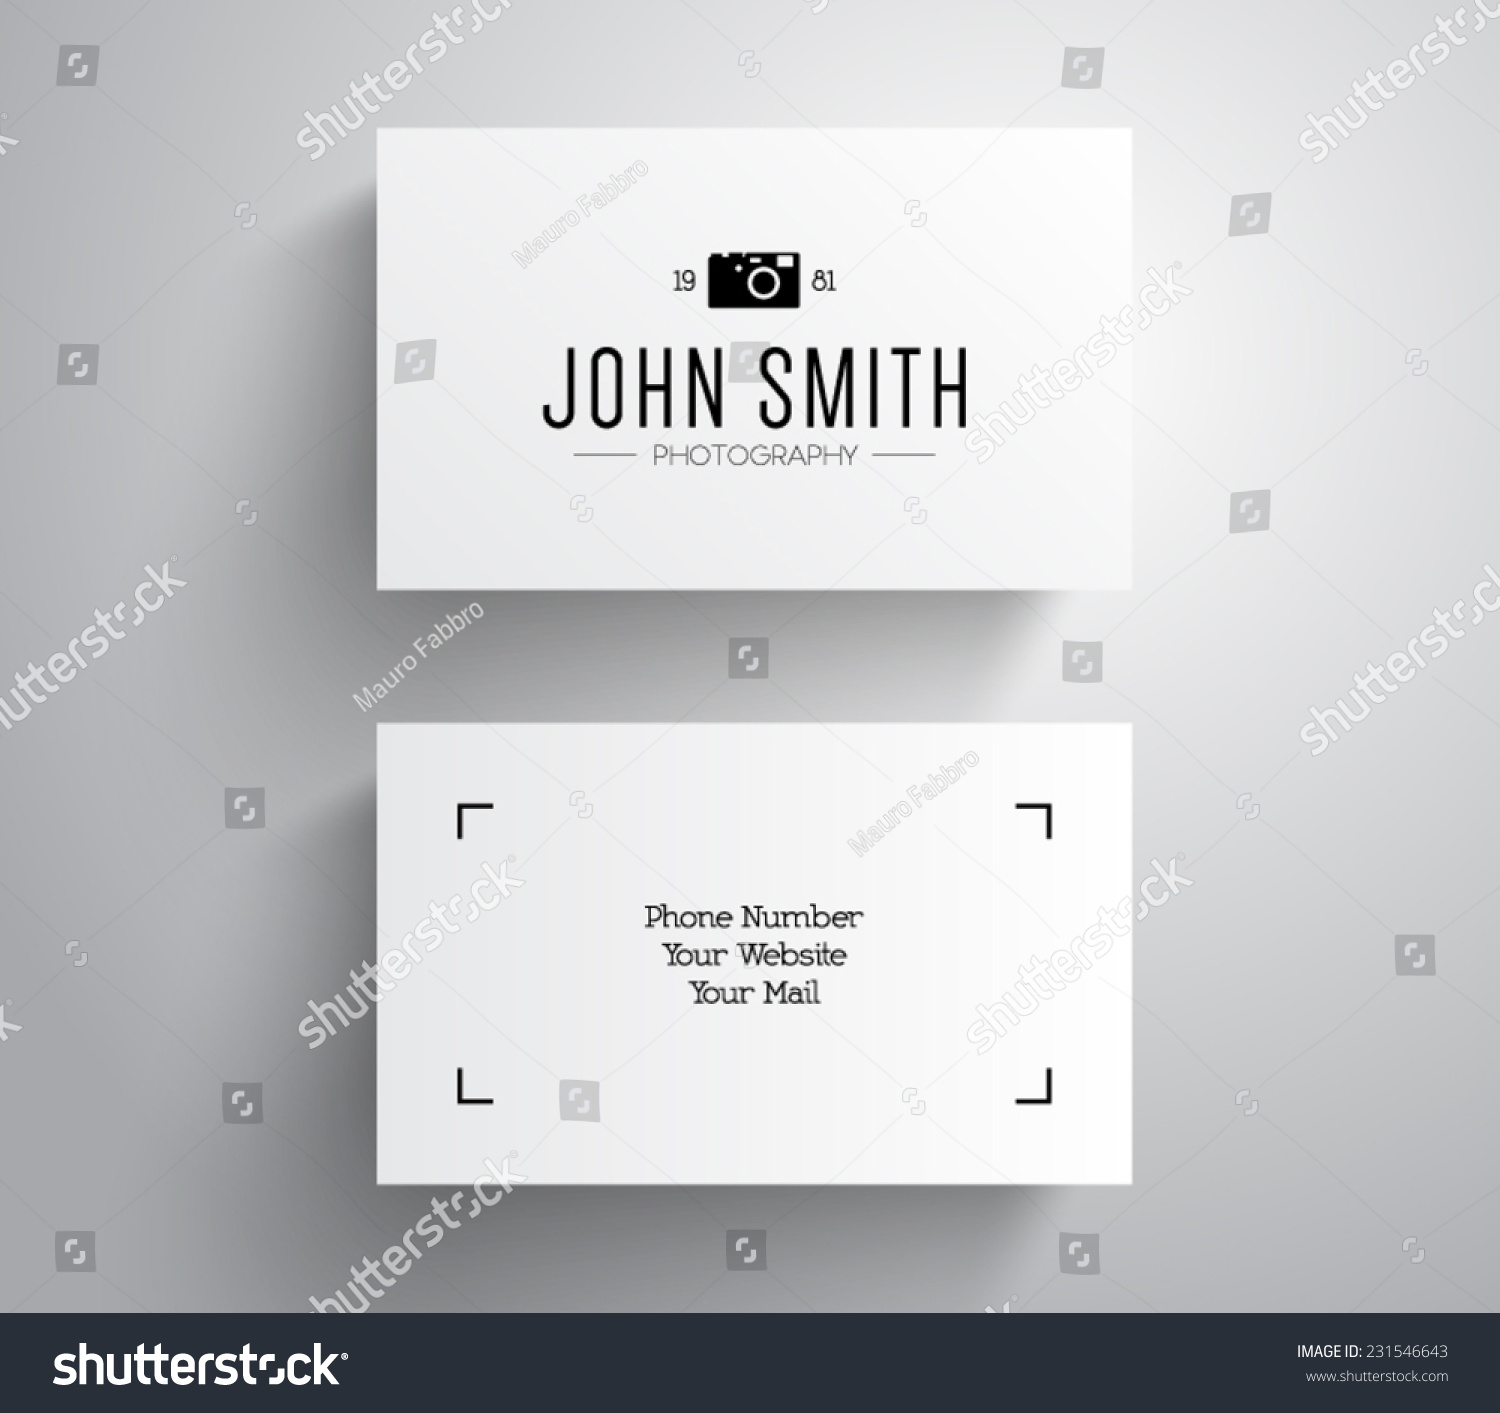 vector photographer photography business card template stock